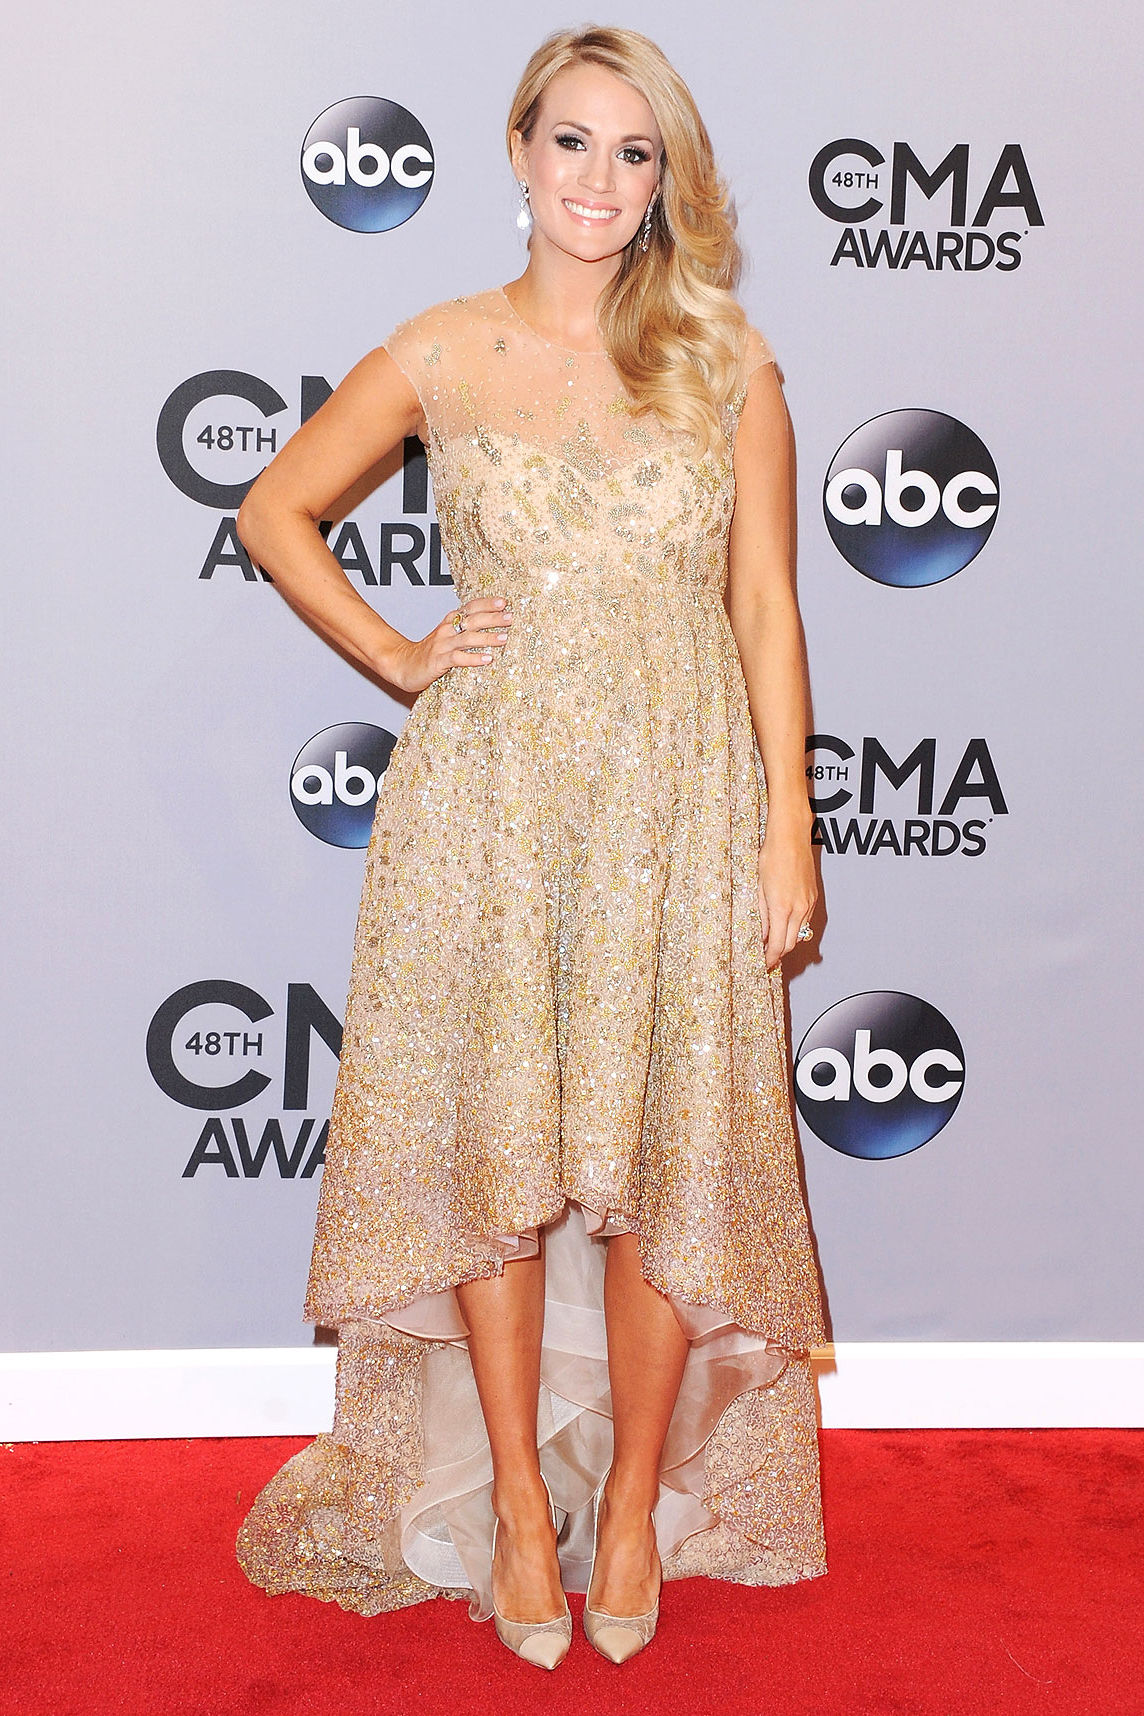 Carrie Underwood Imagines Her Life as a Mom of 2: 'It's Going to Be a Different Ball Game'